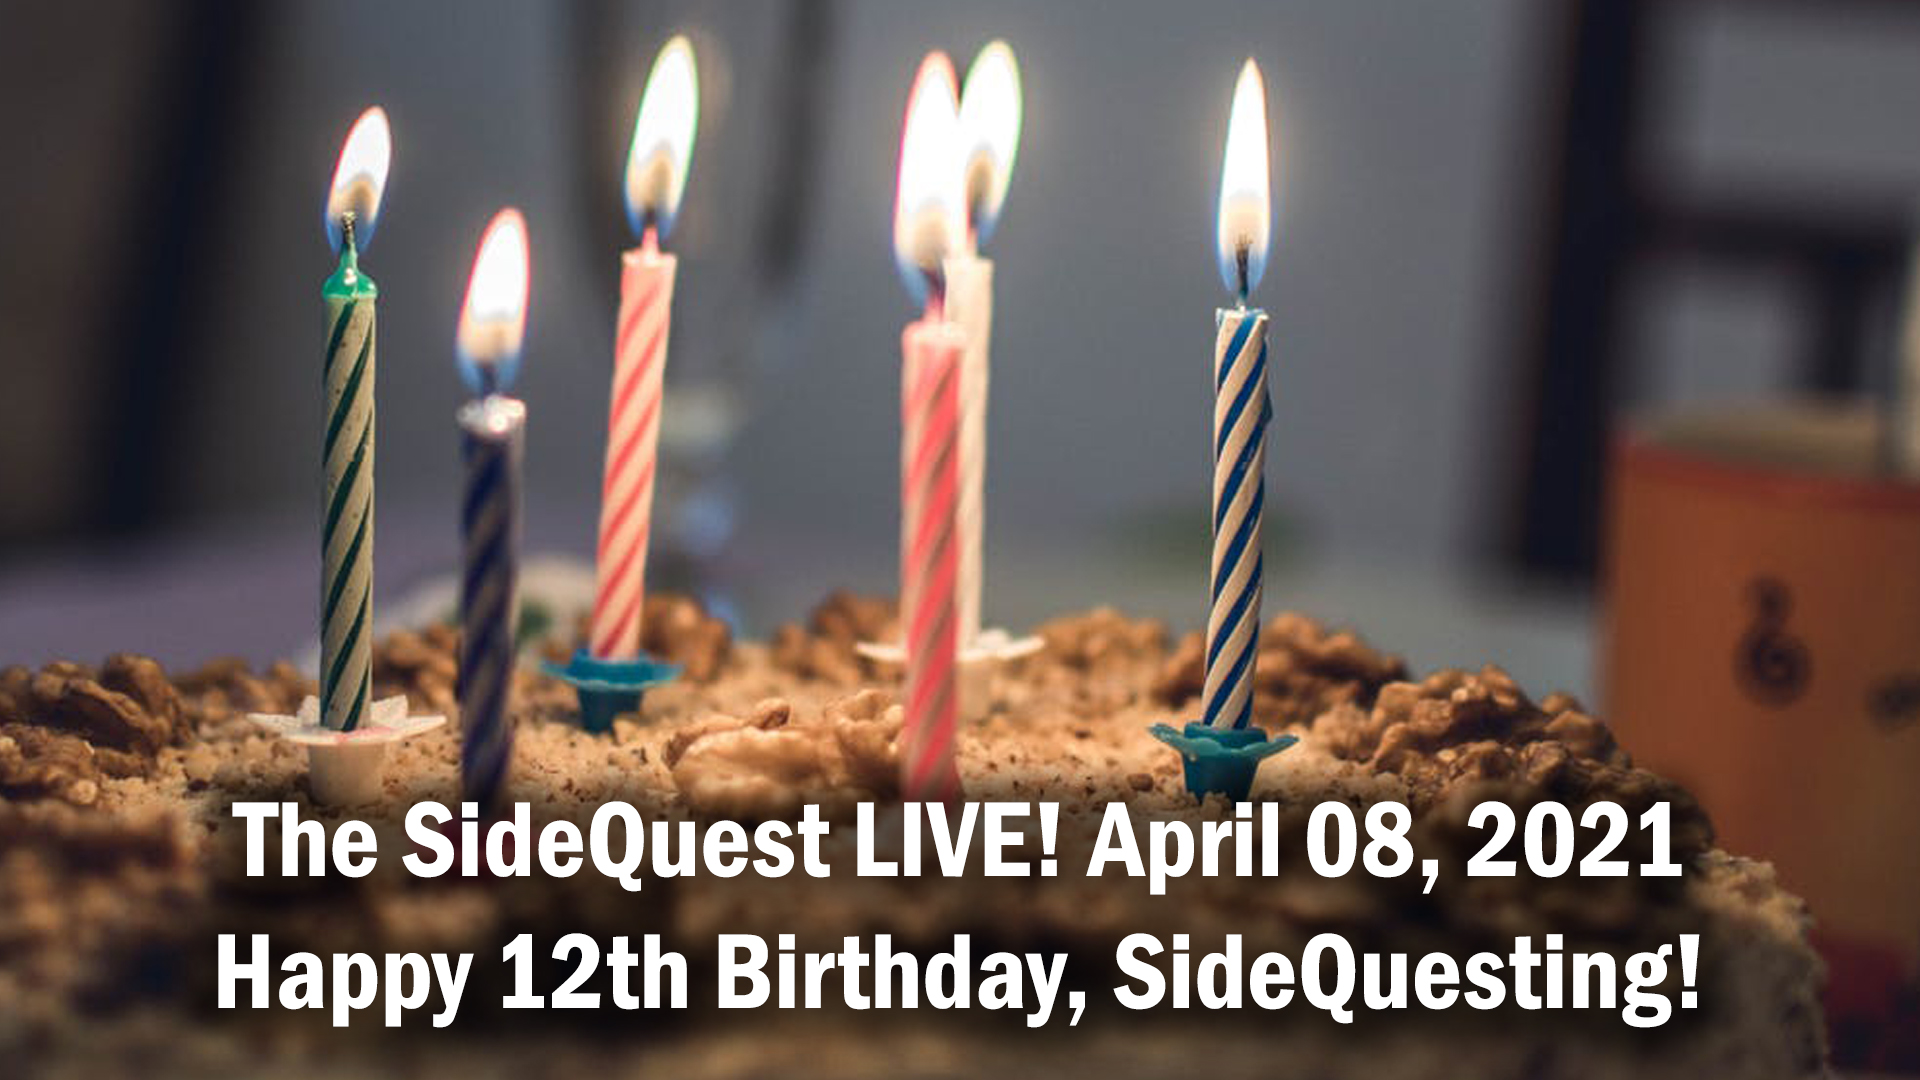 The SideQuest LIVE! April 08, 2021: Happy 12th Birthday, SideQuesting!